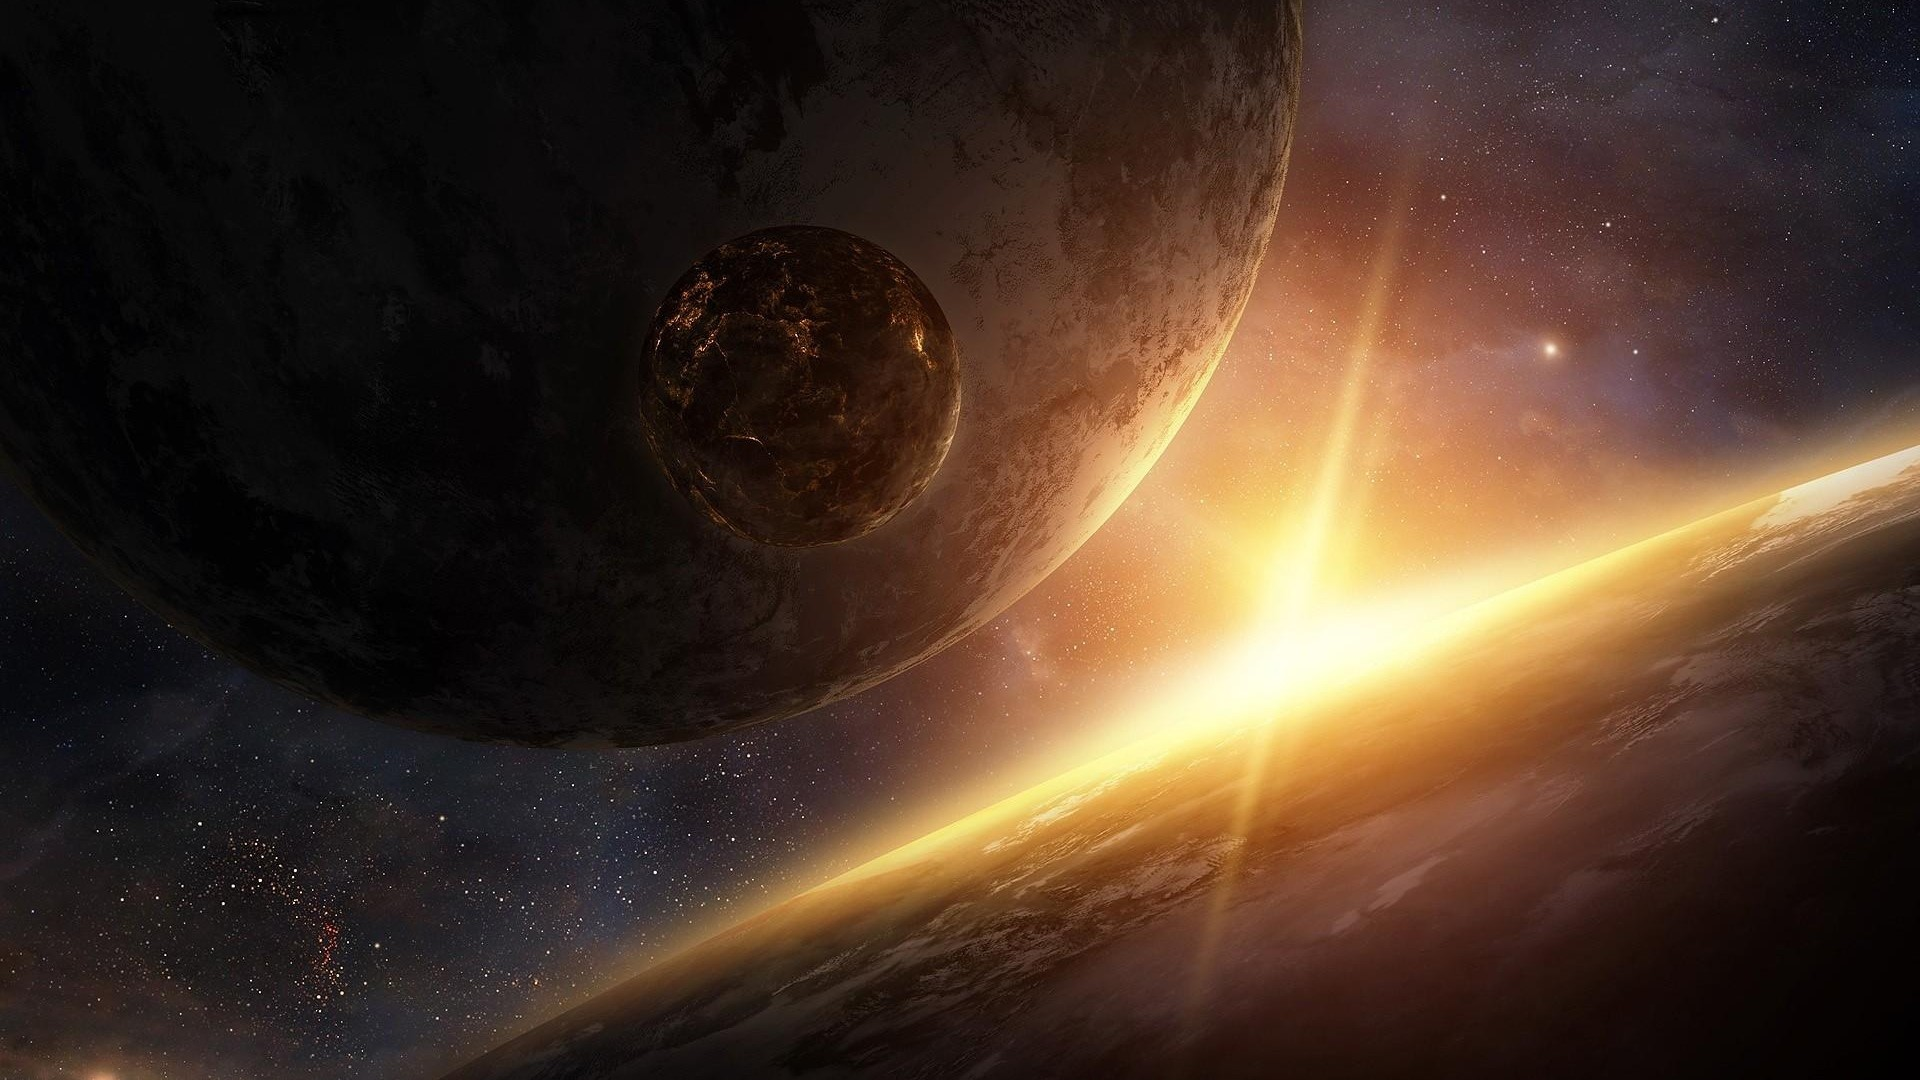 Get the latest planet, rays, light news, pictures and videos and learn all  about planet, rays, light from wallpapers4u.org, your wallpaper news source.